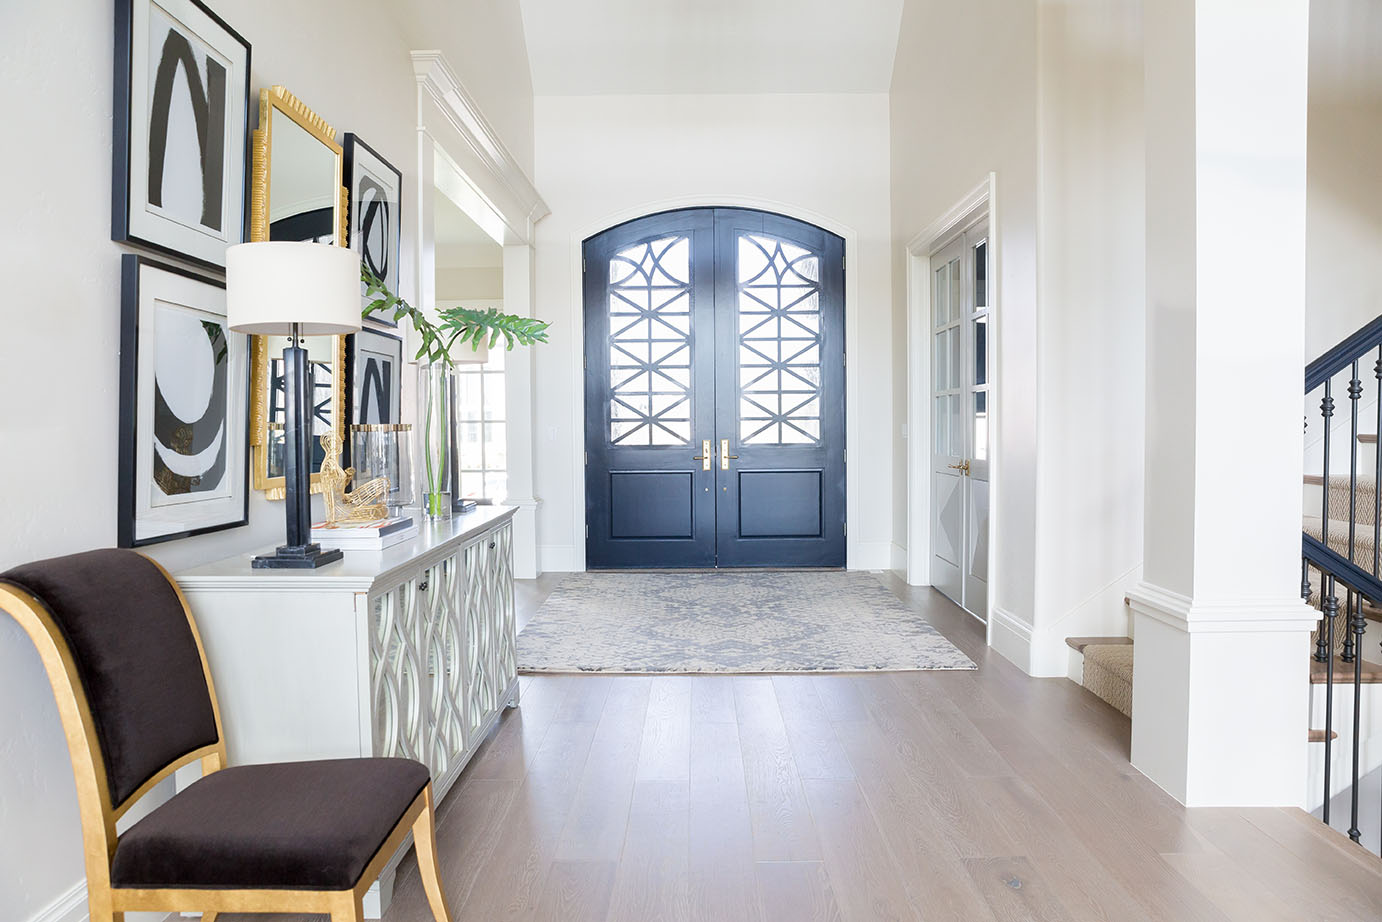 Ivory Lane Entry | Alice Lane Interior Design | Photo by Lindsay Salazar